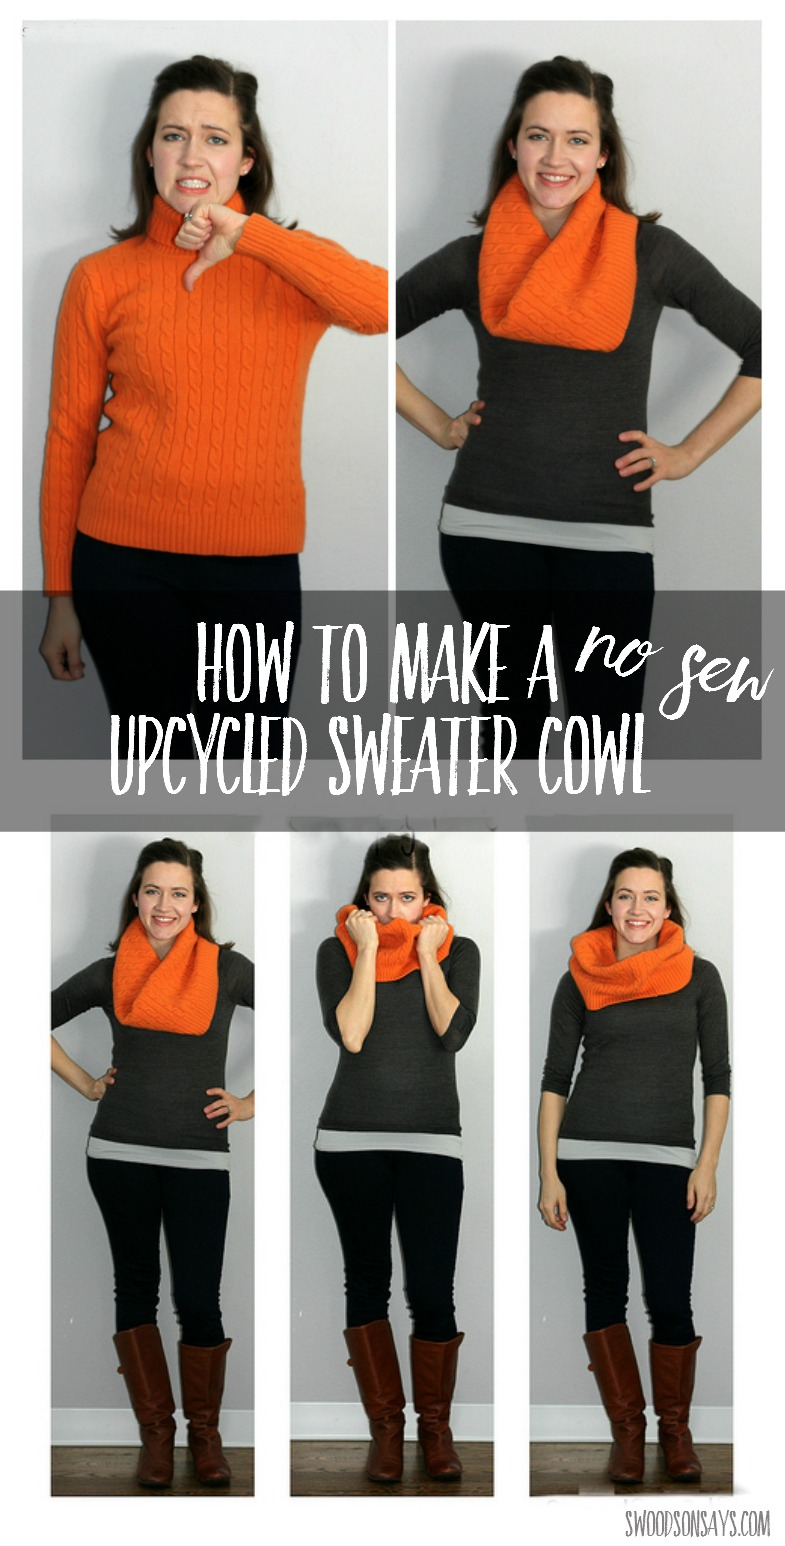 Easy wool sweater upcycle idea! Just cut and wear - no sewing required. Such a fun refashion tutorial, perfect for a craft night or to make with teenagers.What better way to get a cozy cowl for practically free! Click through to see a second example and more tips.